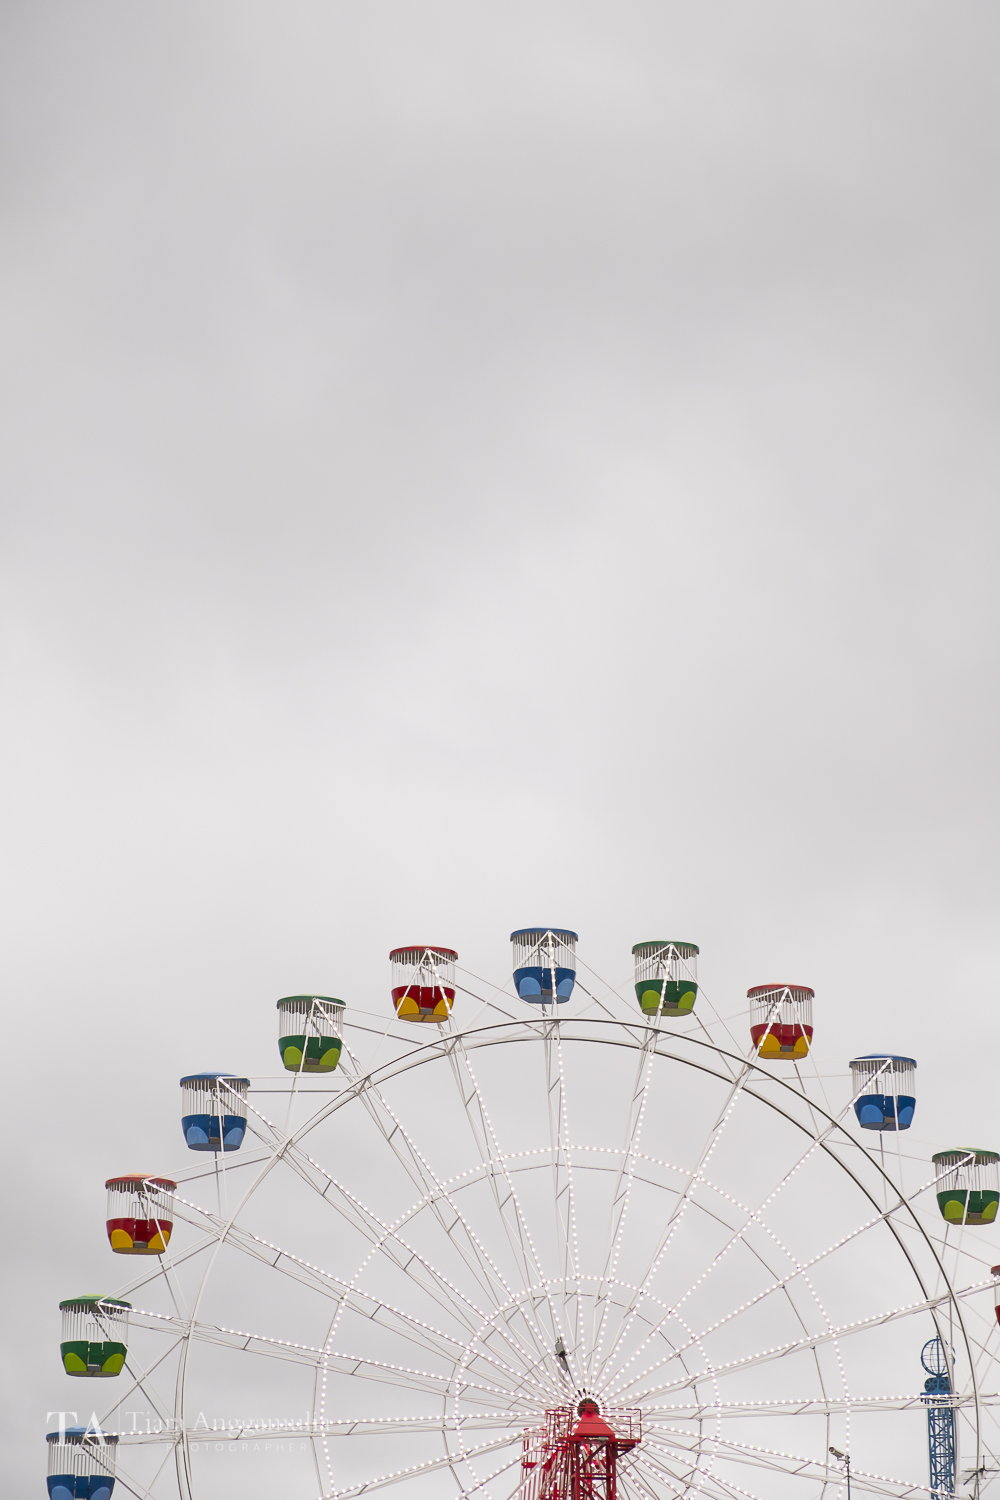 The ferris wheel at Luna Park.